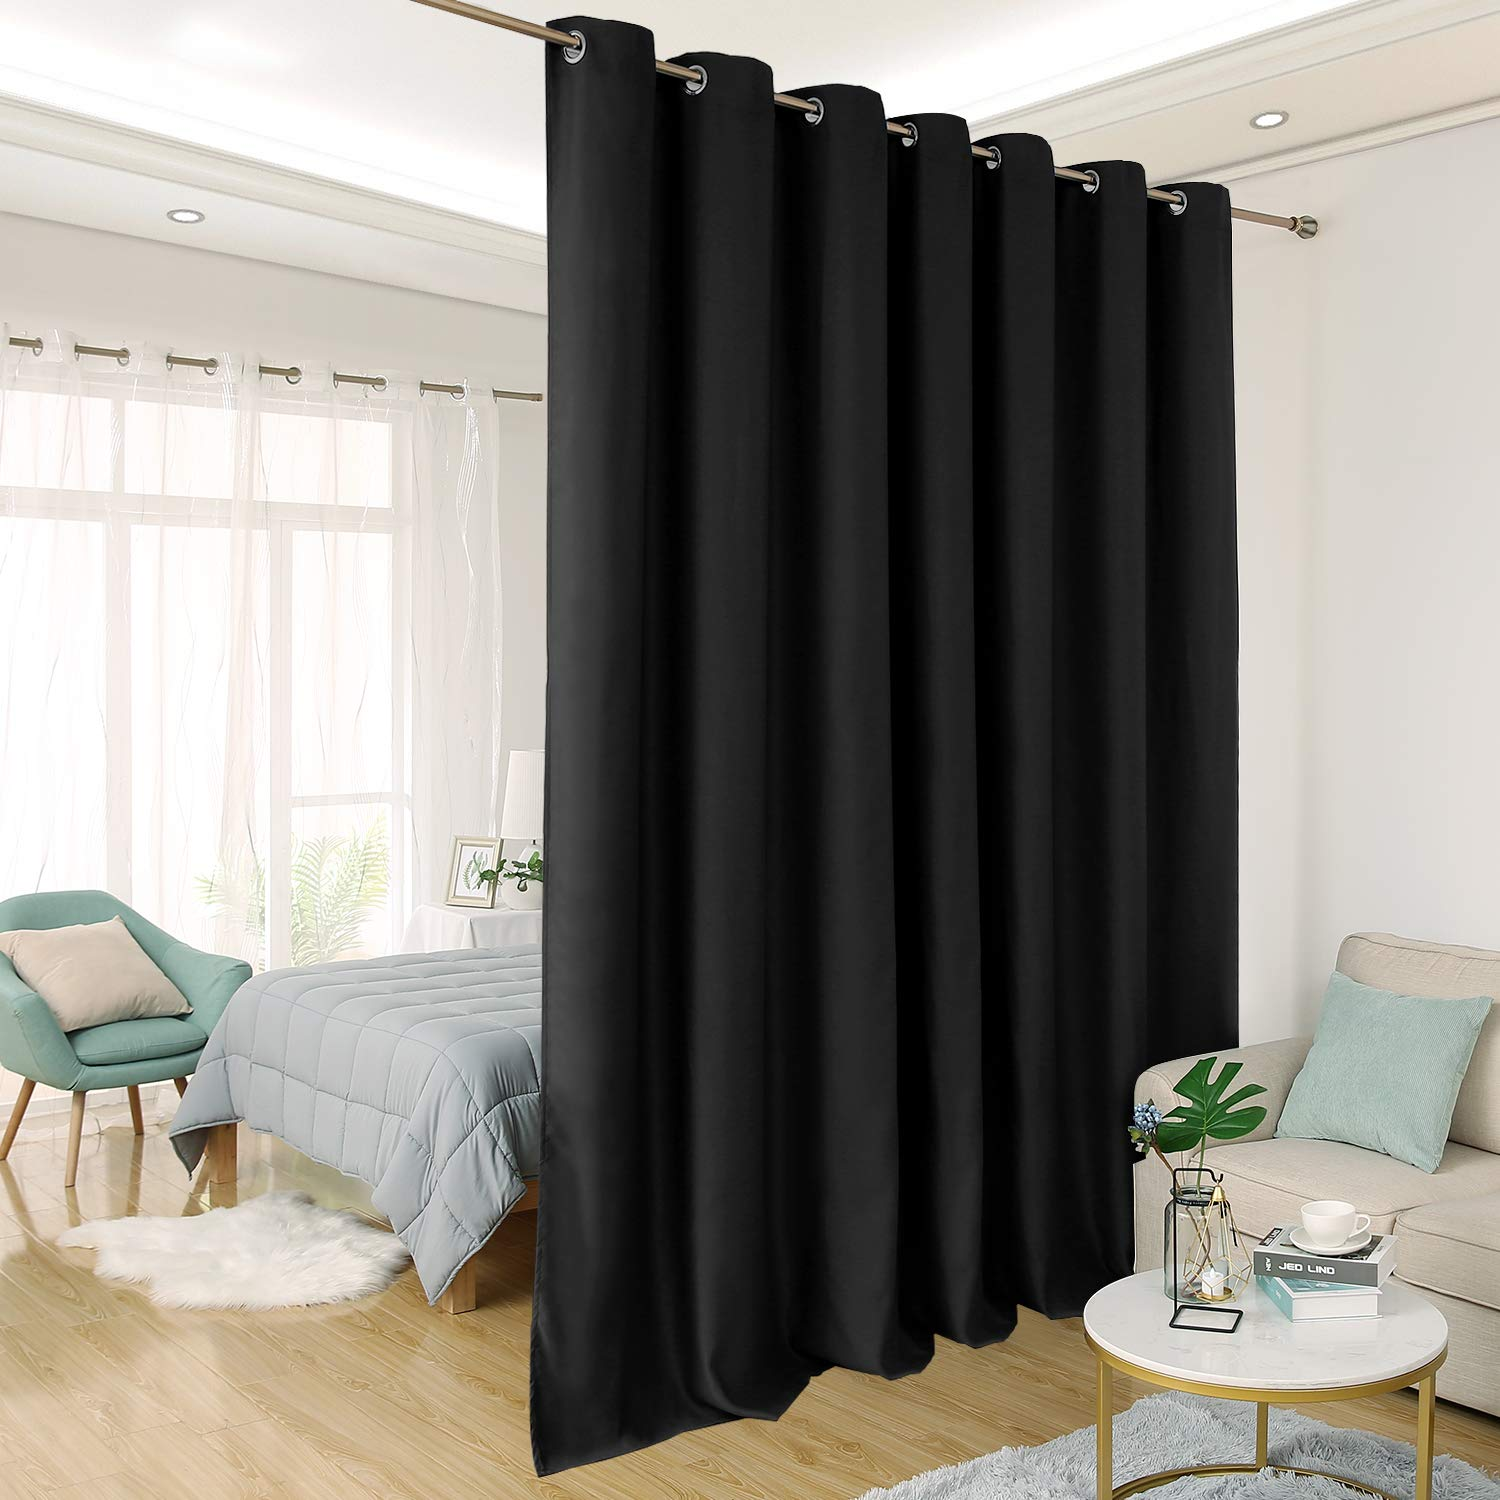 Deconovo Wide Blackout Curtain for Sliding Glass Door Room Divider Curtain Thermal Insulated Blackout Patio Door Curtain Panel, 8.3ft Wide x 7ft Tall, 1 Panel, Black by Deconovo (Image #1)